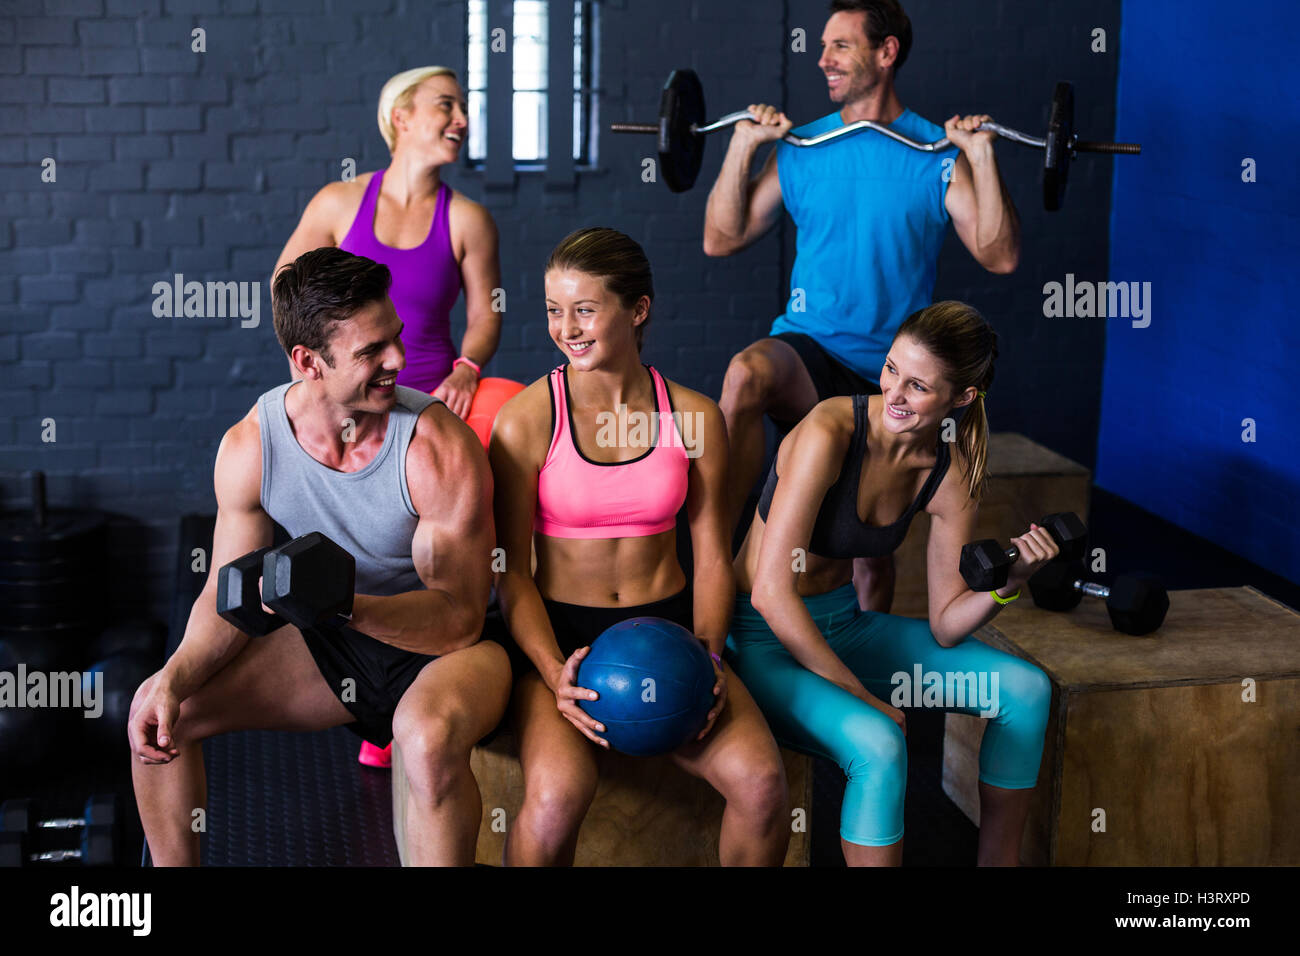 Happy athletes with exercise equipment - Stock Image